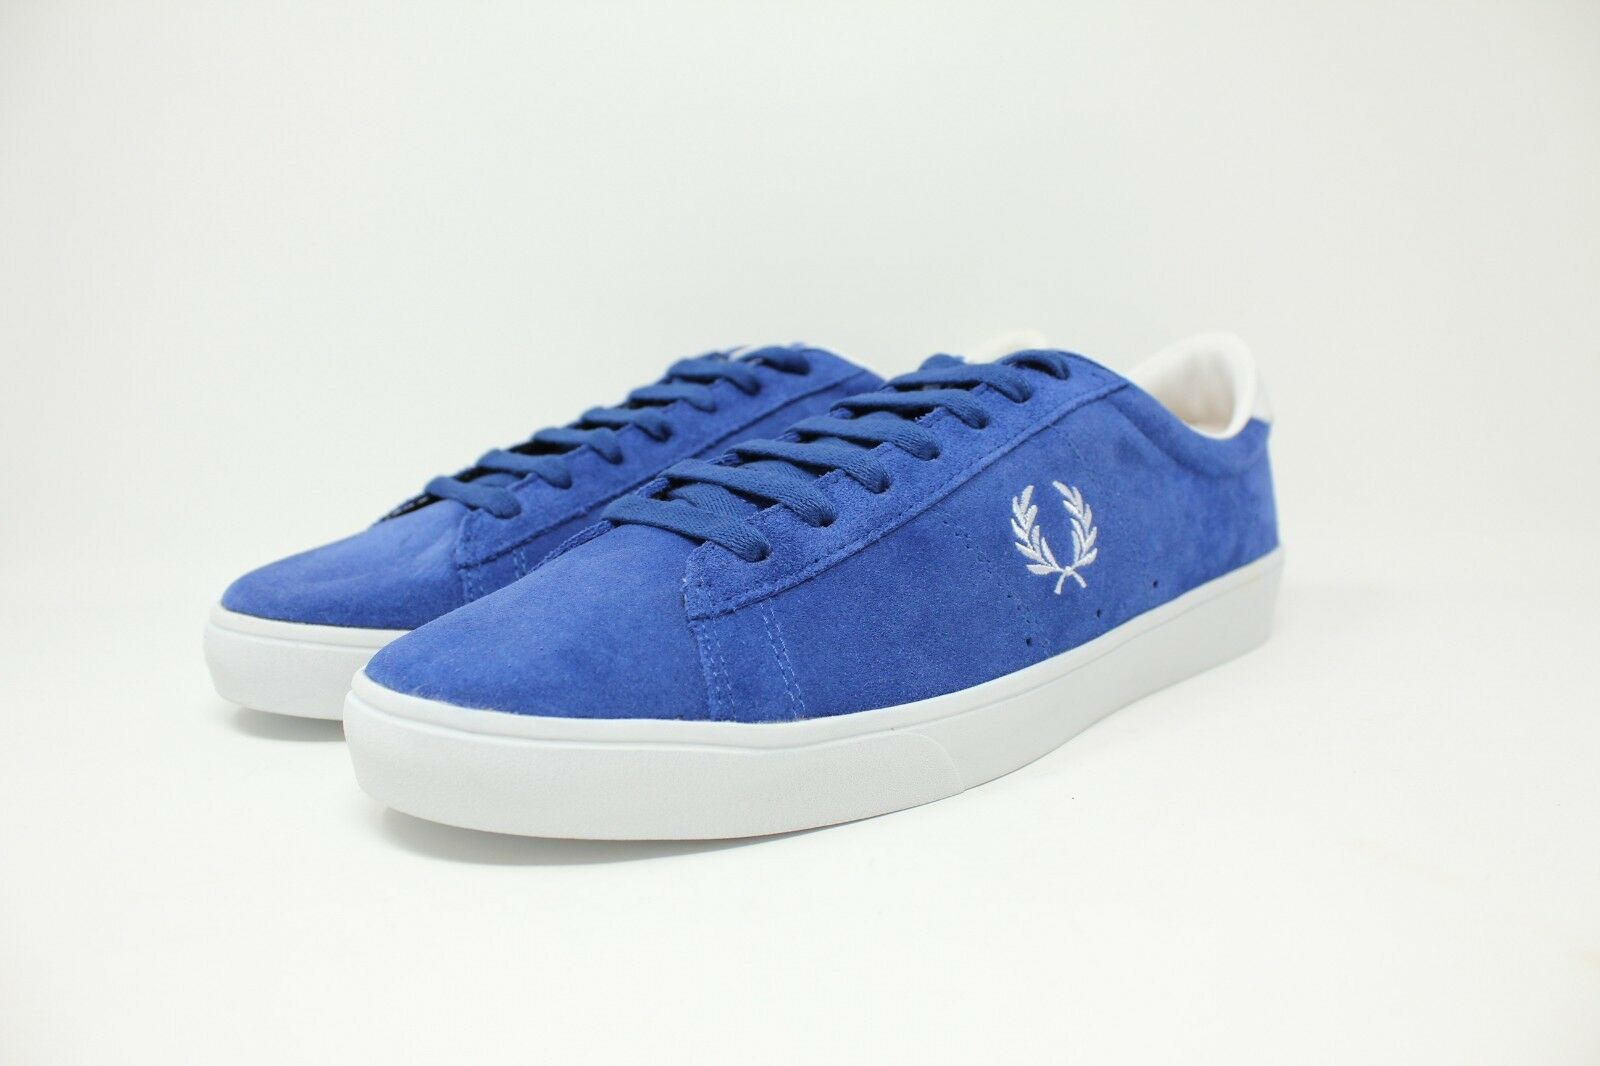 Fred Perry Spencer Suede B5206 955 Casual Sneaker Royal Men SZ 10.5 50% OFF